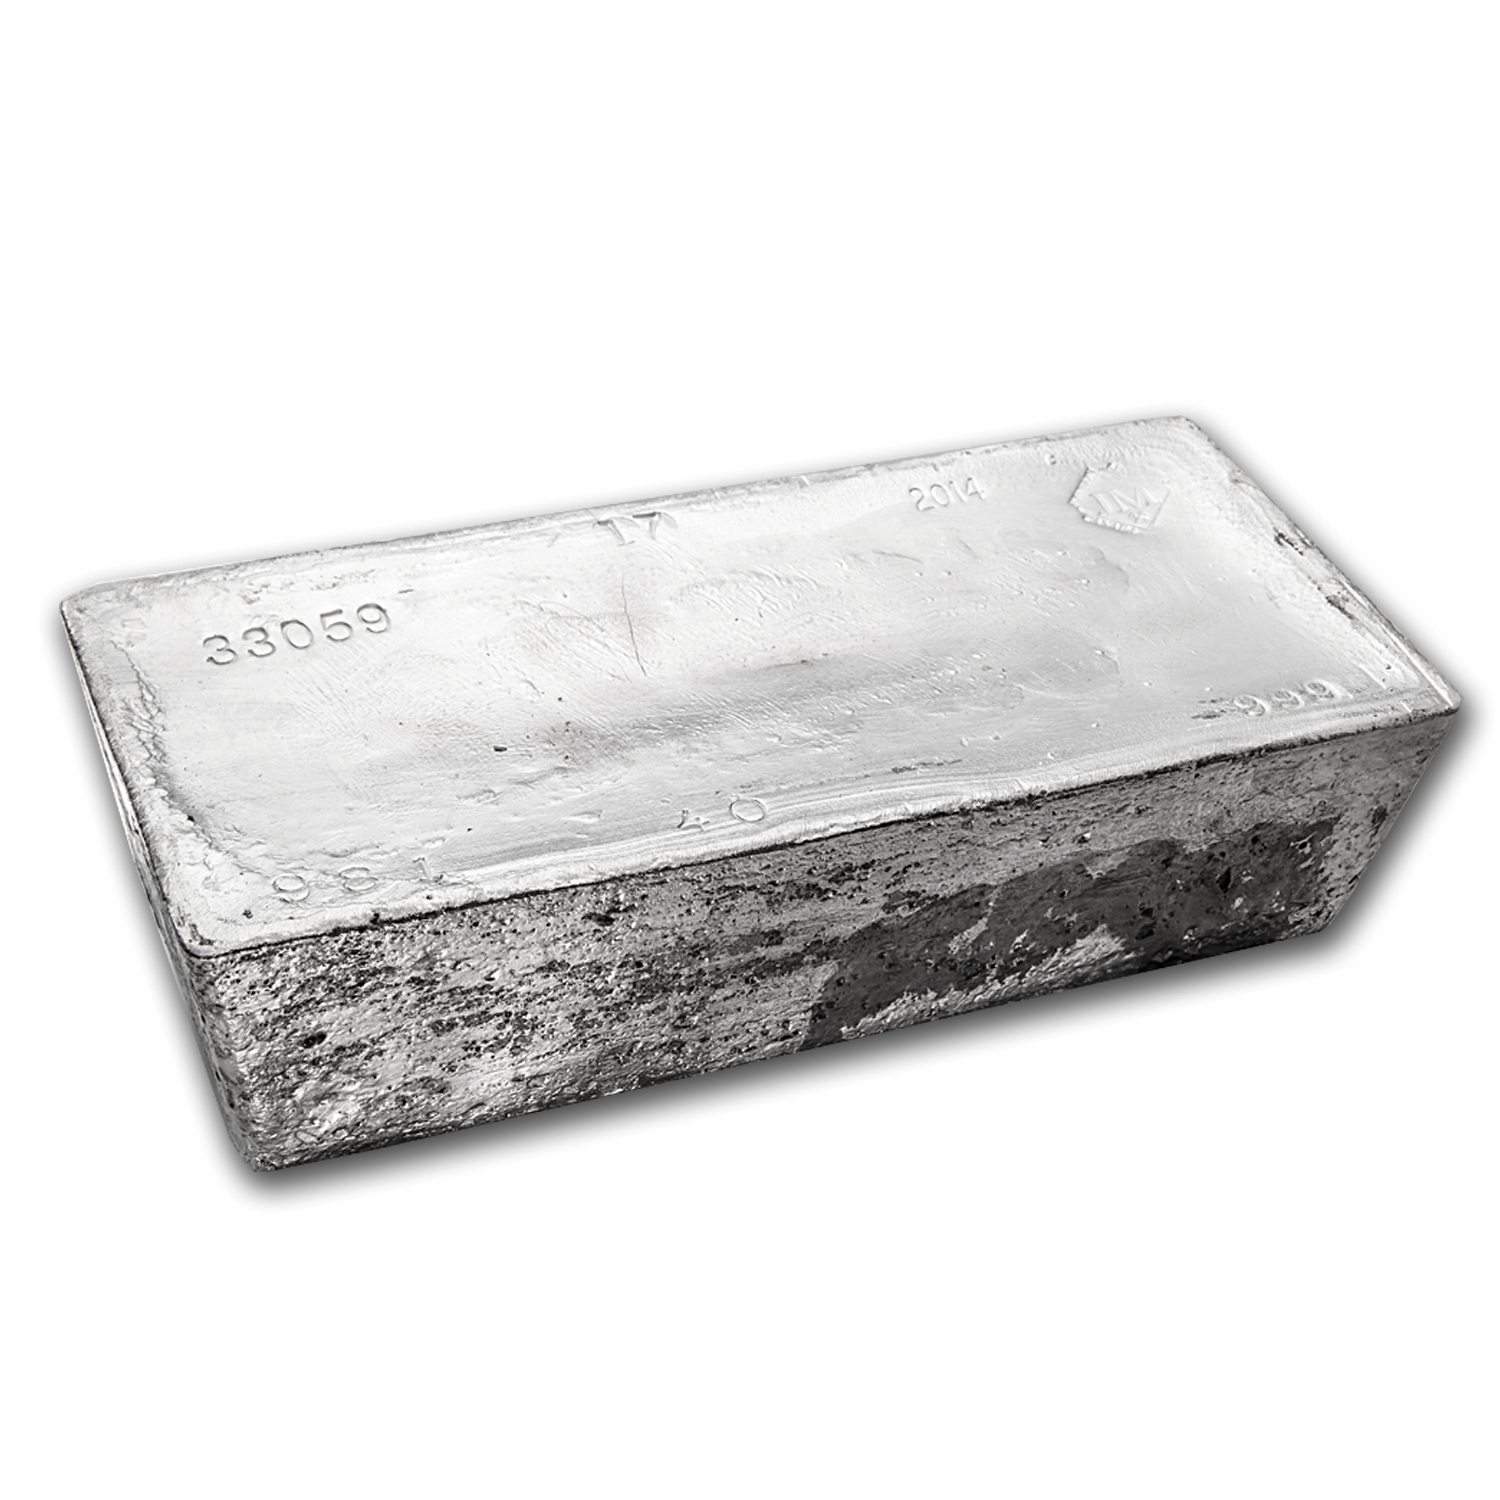 956.50 oz Silver Bar - Johnson Matthey